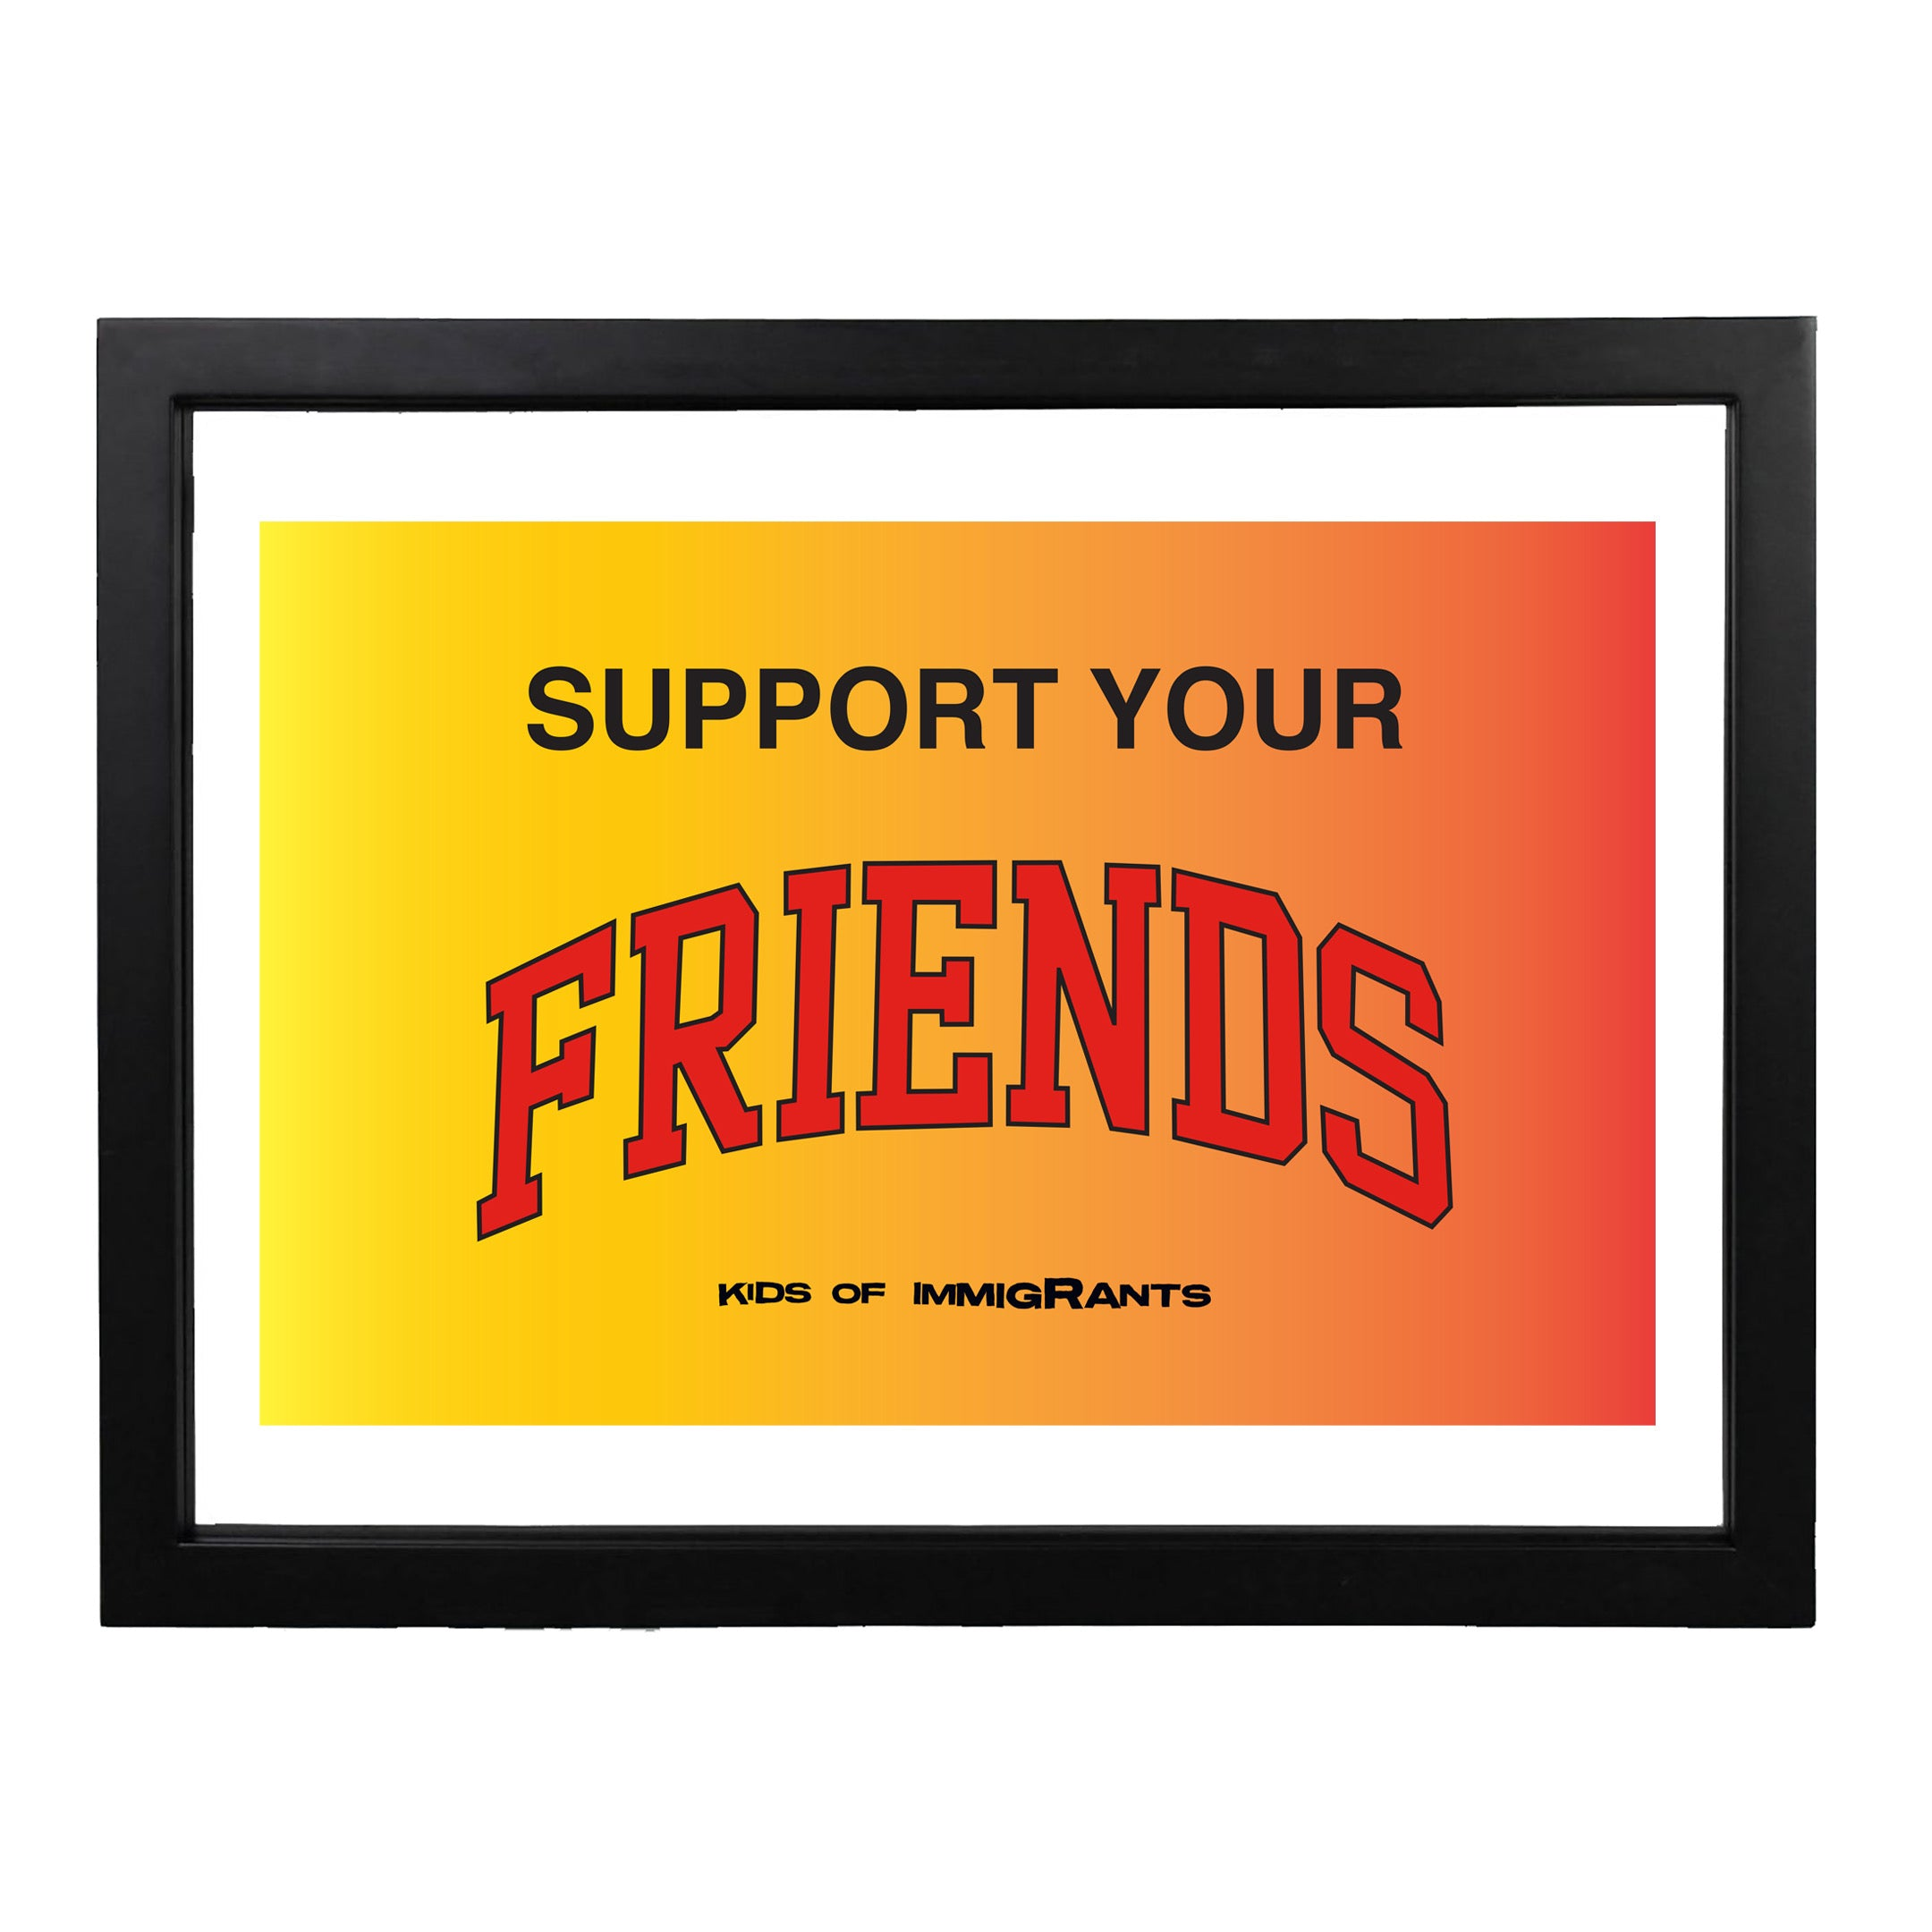 SUPPORT YOUR FRIENDS POSTER - YELLOW GRADIENT